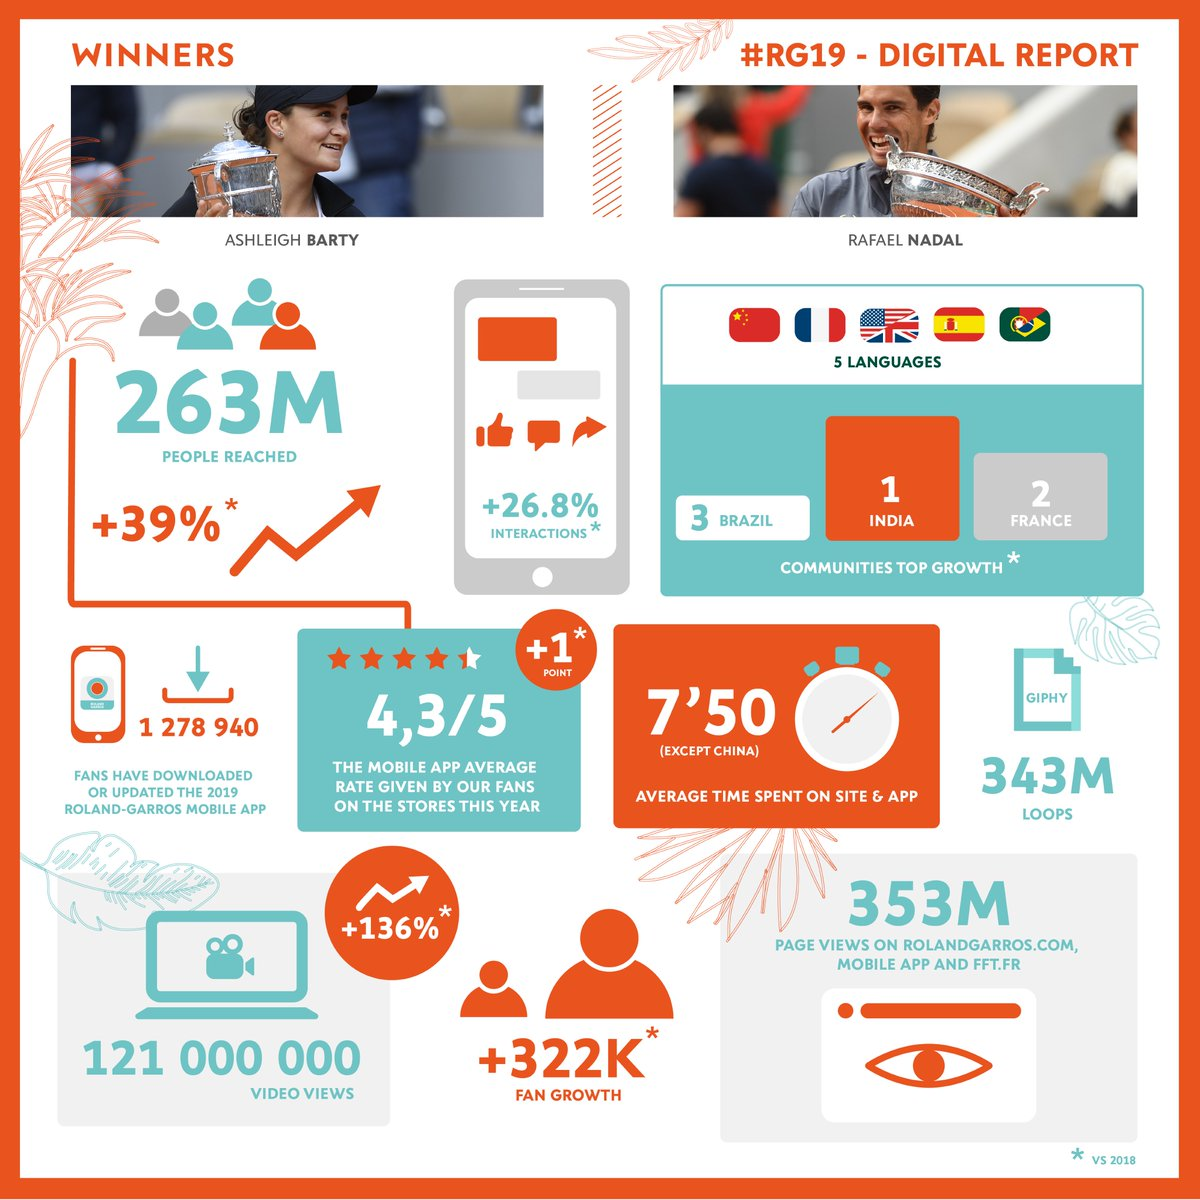 12 titles, 5 languages used, 353 millions page views… Focus on #RG19 digital figures! More informations >> http://bit.ly/2RrVR8s